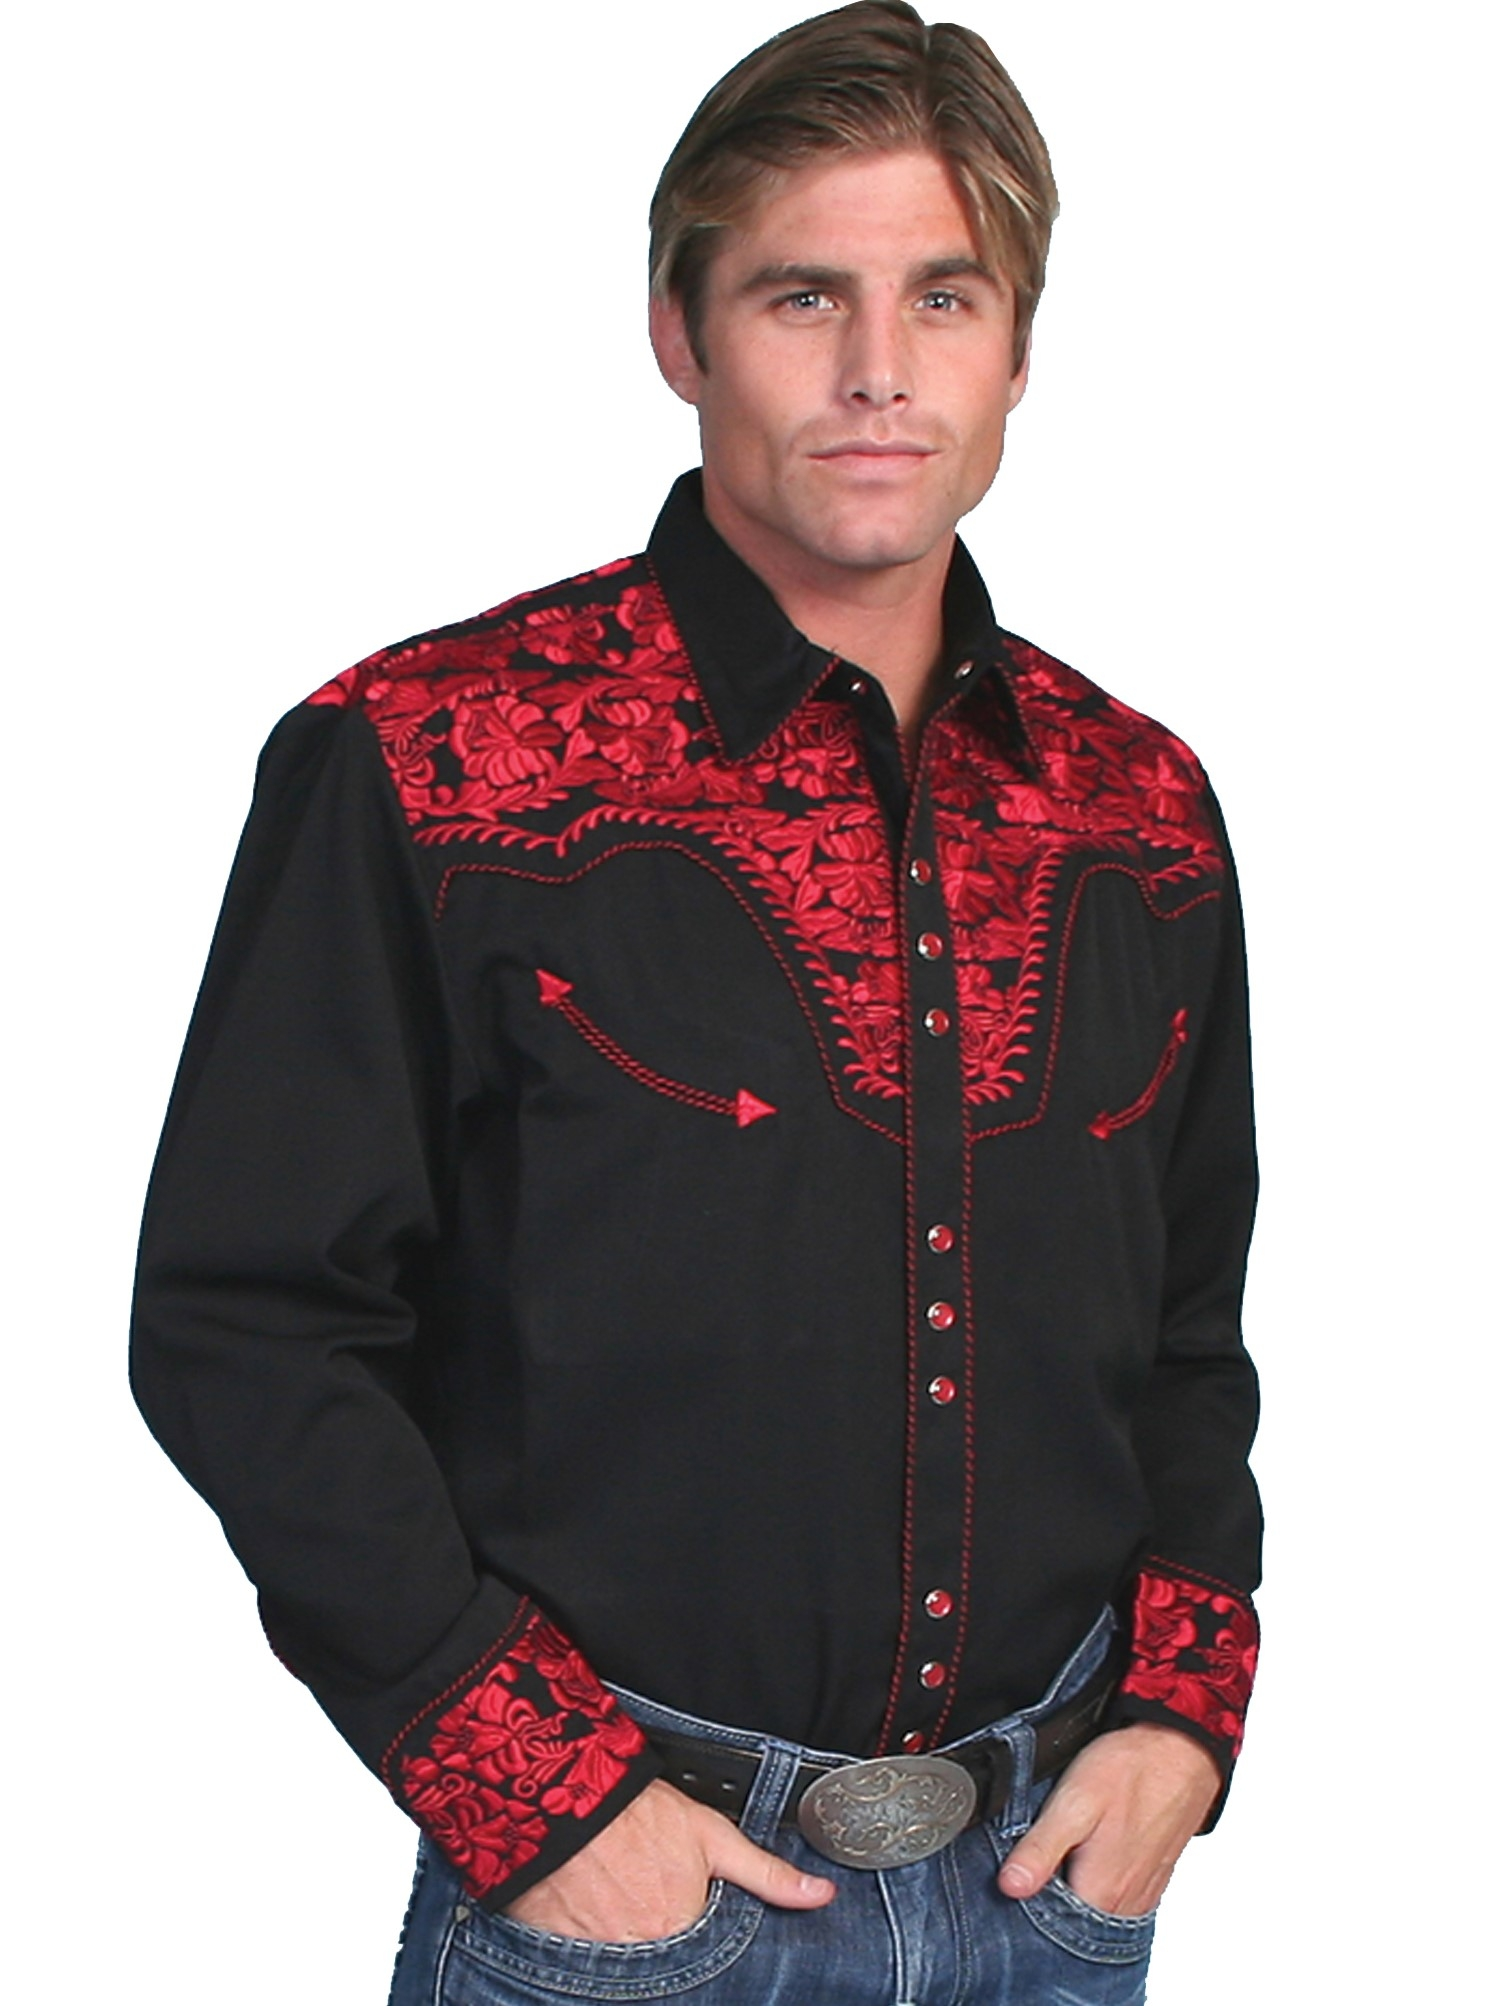 rose parade shirt, tournament of roses shirt, 2012 rose parade shirt, scully mens shirt, mens scully western shirt, mens western shirt, cowboy shirt, western shirt for men, scully retro shirt, vintage shirt, retro shirt, scully